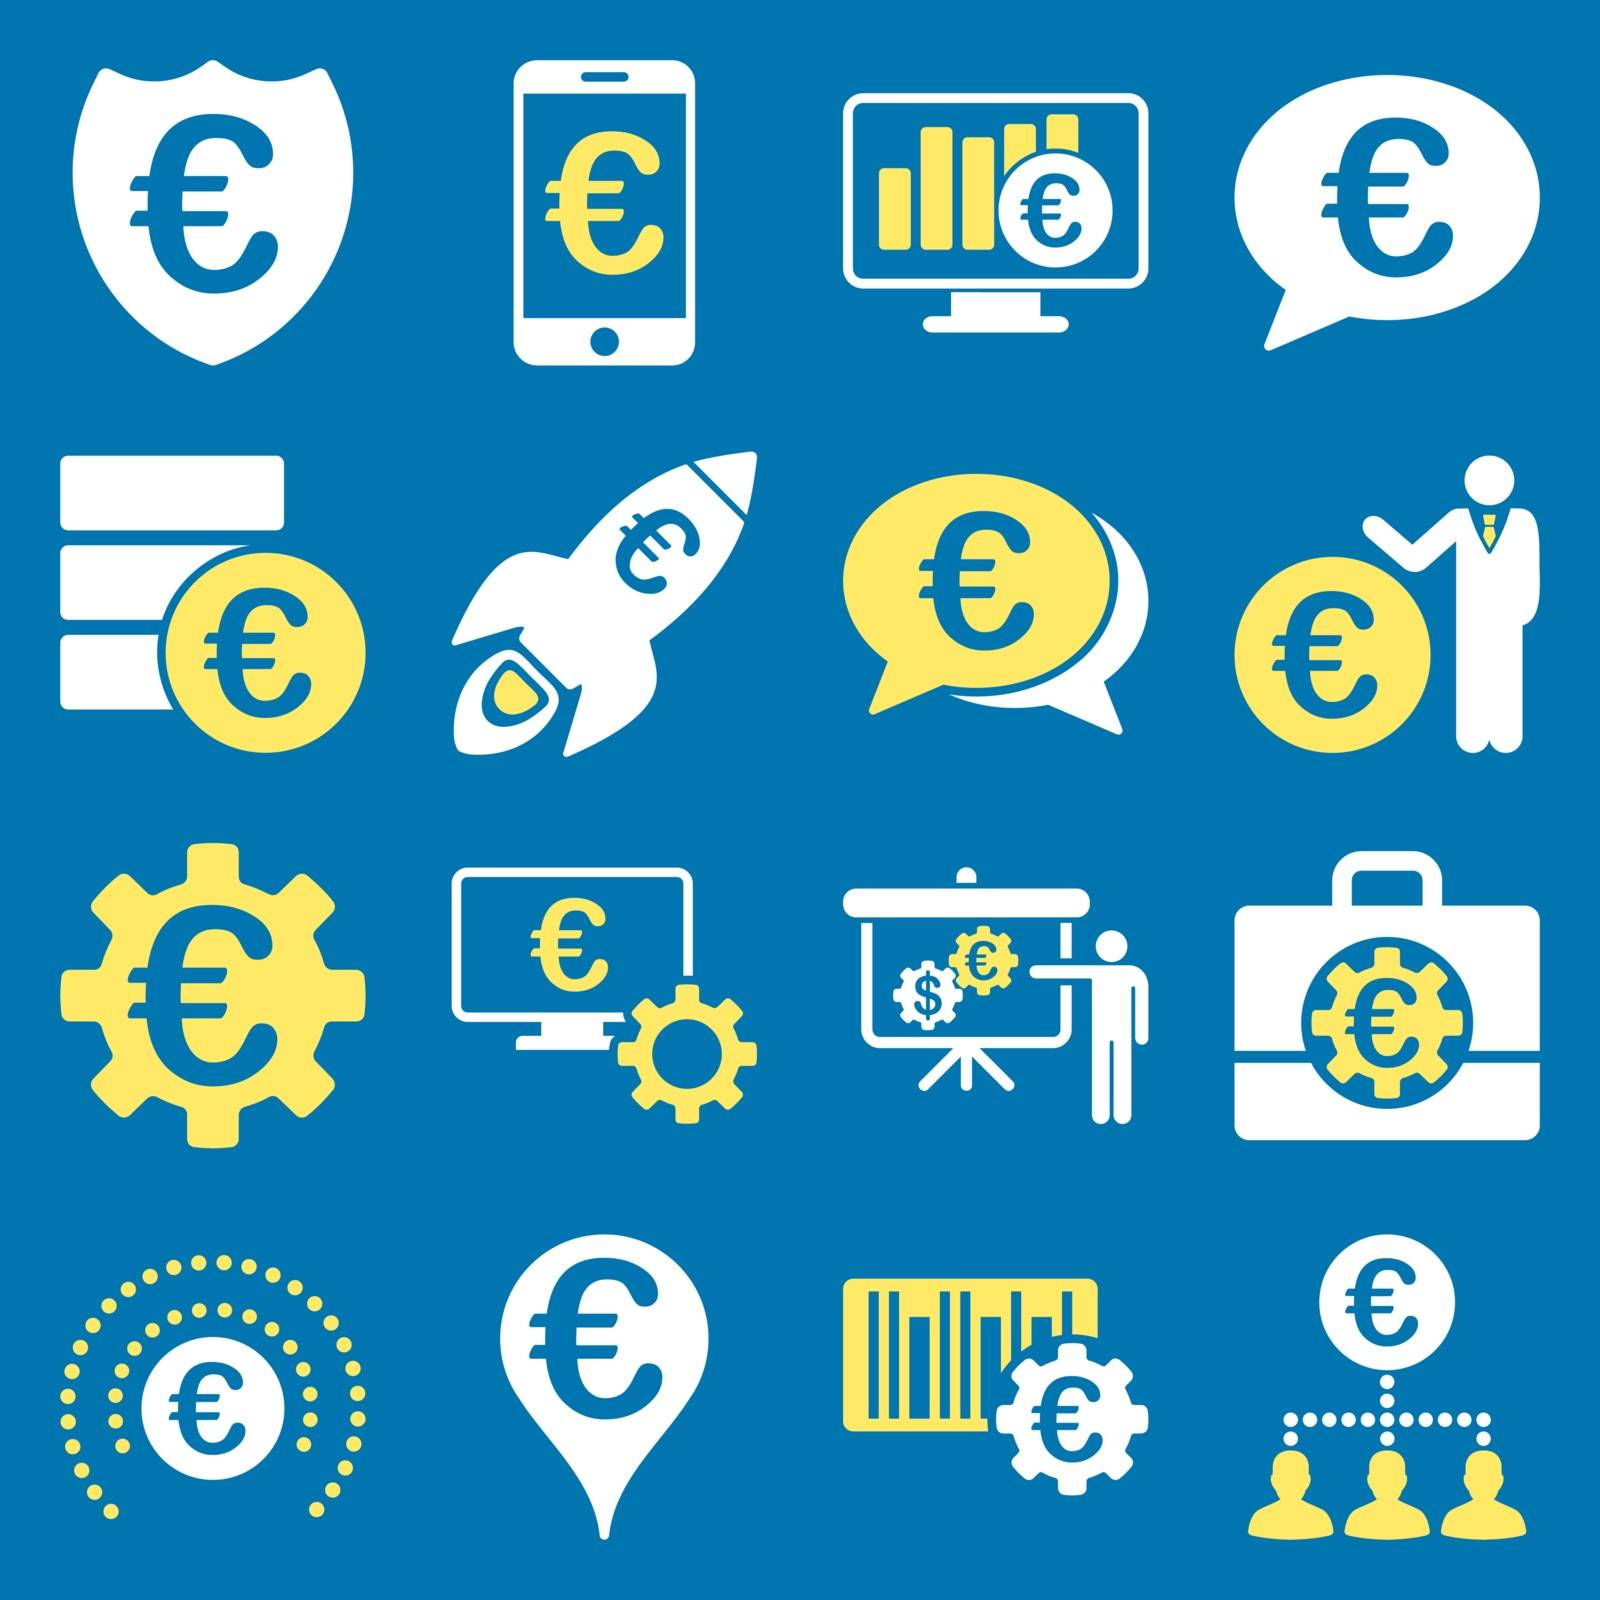 Euro banking business and service tools icons. These flat bicolor icons use yellow and white. Images are isolated on a blue background. Angles are rounded.